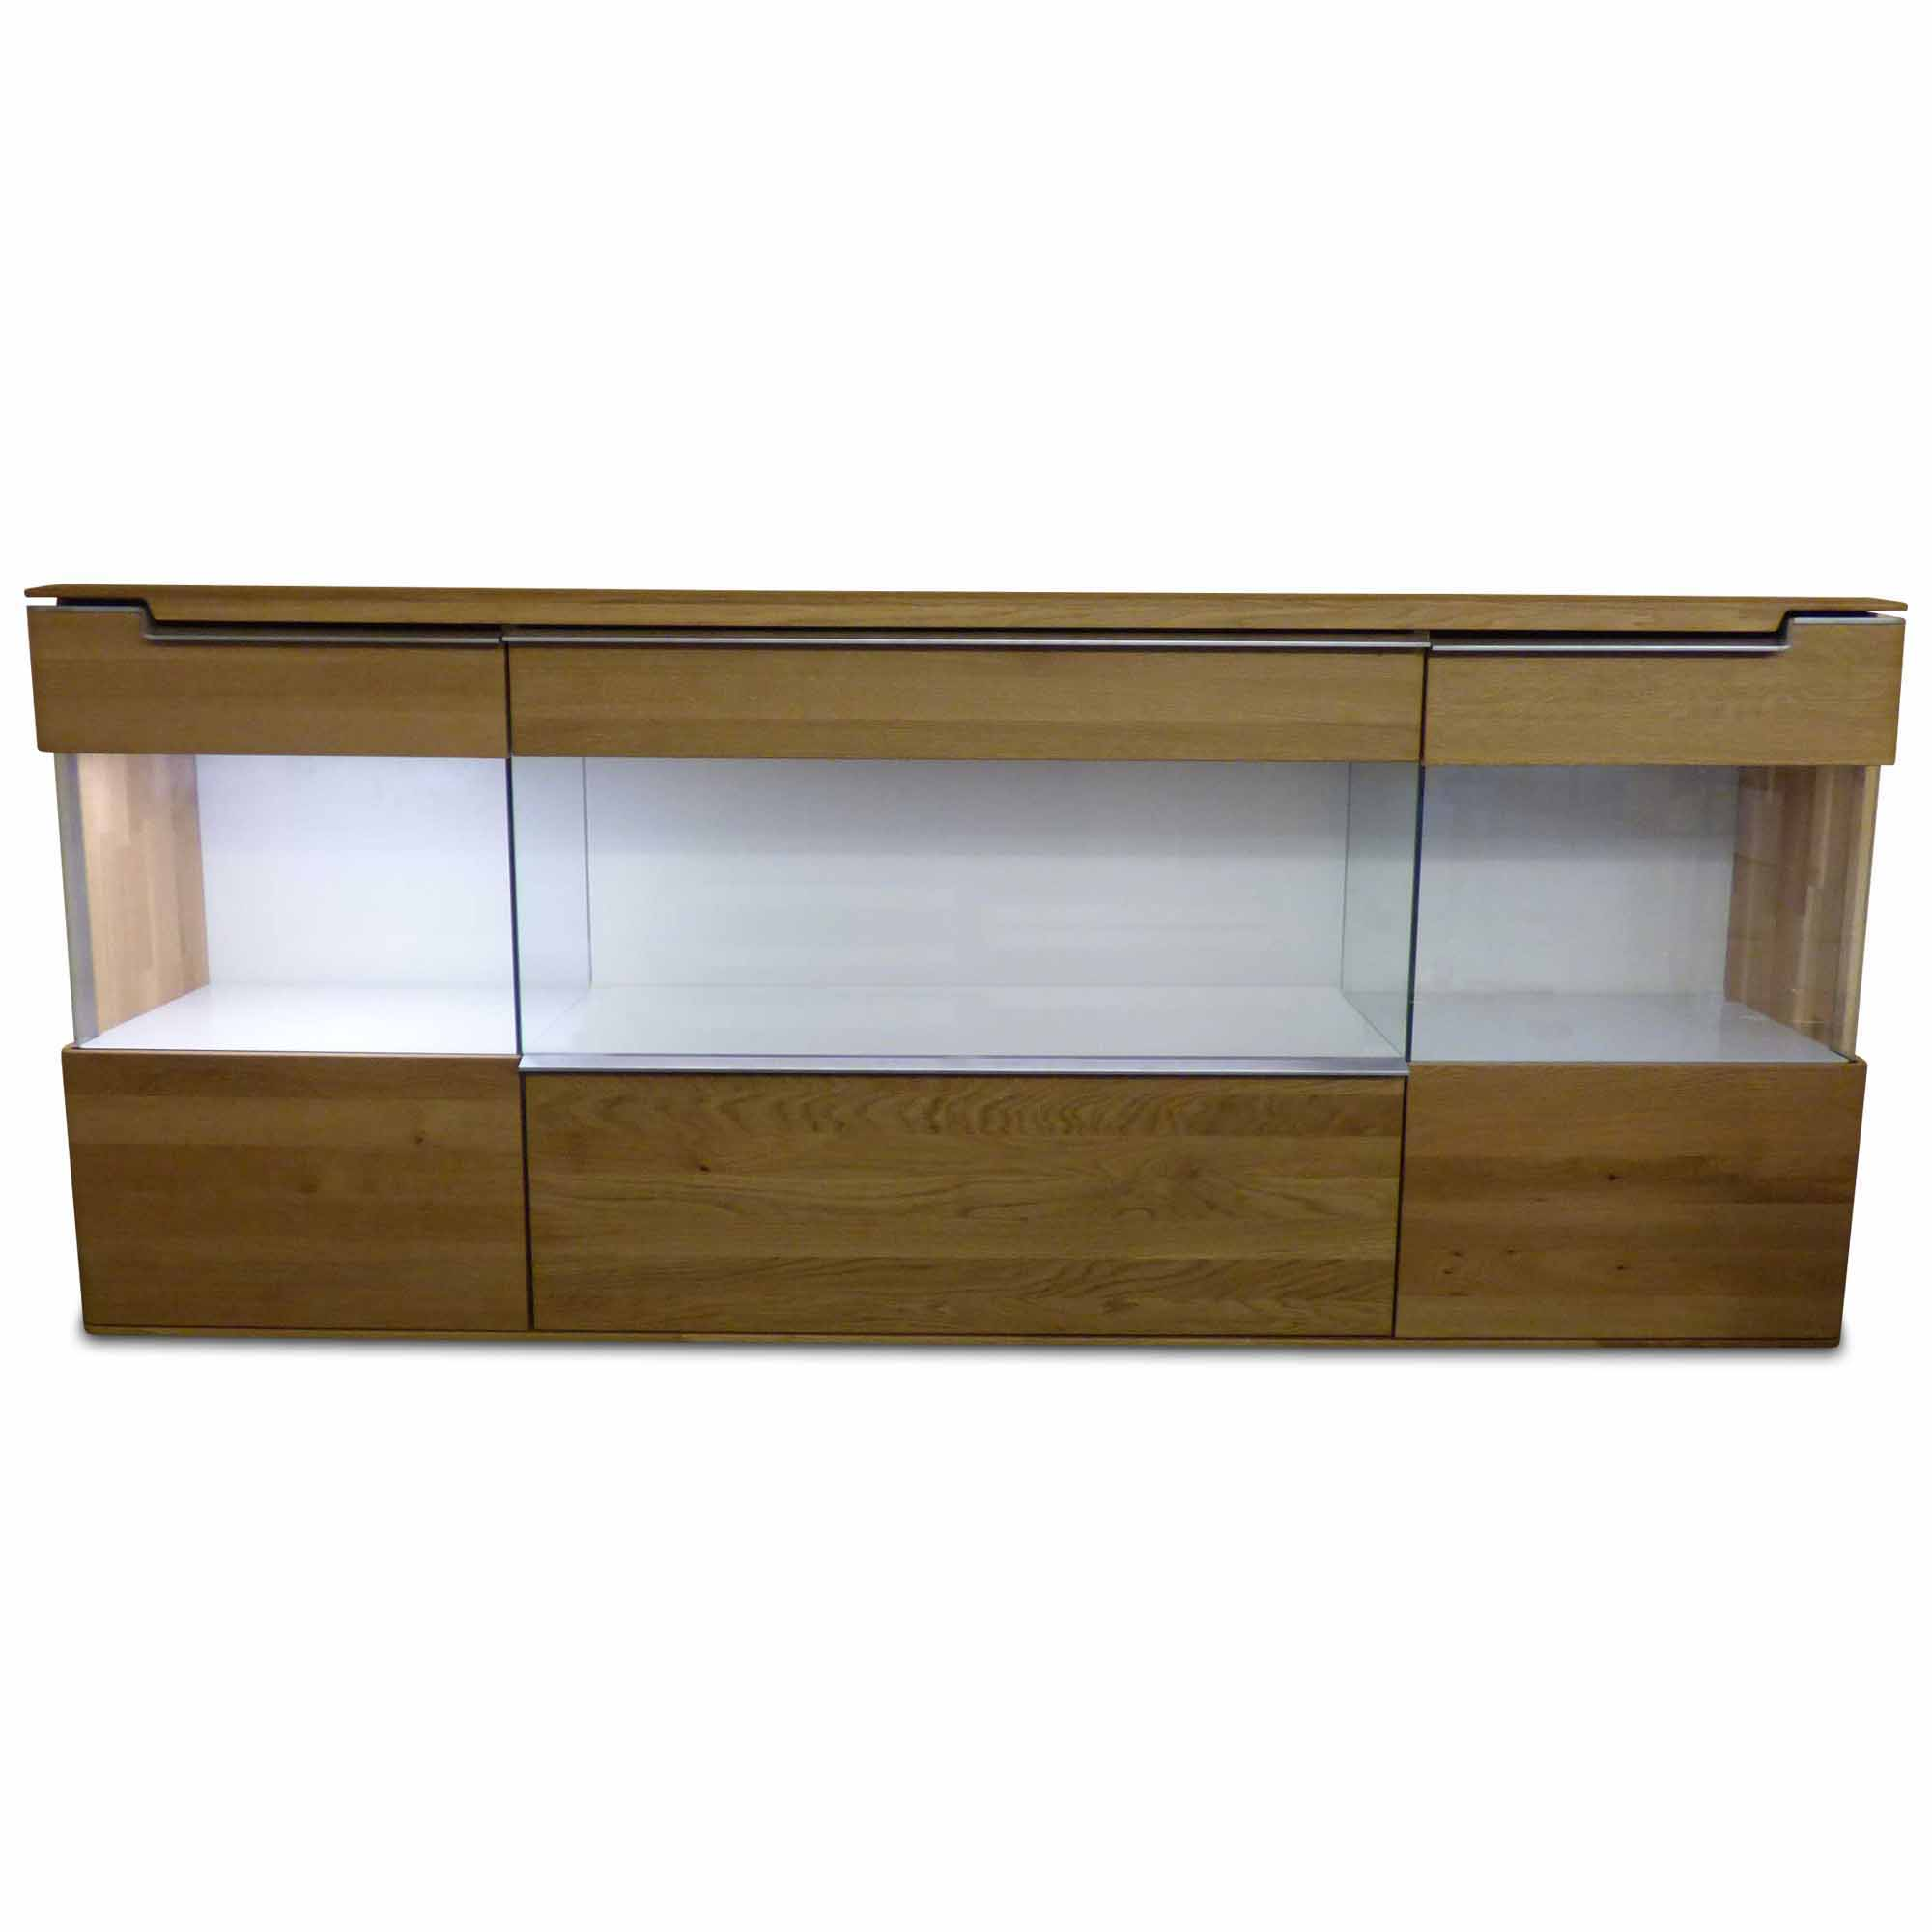 h lsta designer sideboard vedua holz glas braun wei ebay. Black Bedroom Furniture Sets. Home Design Ideas